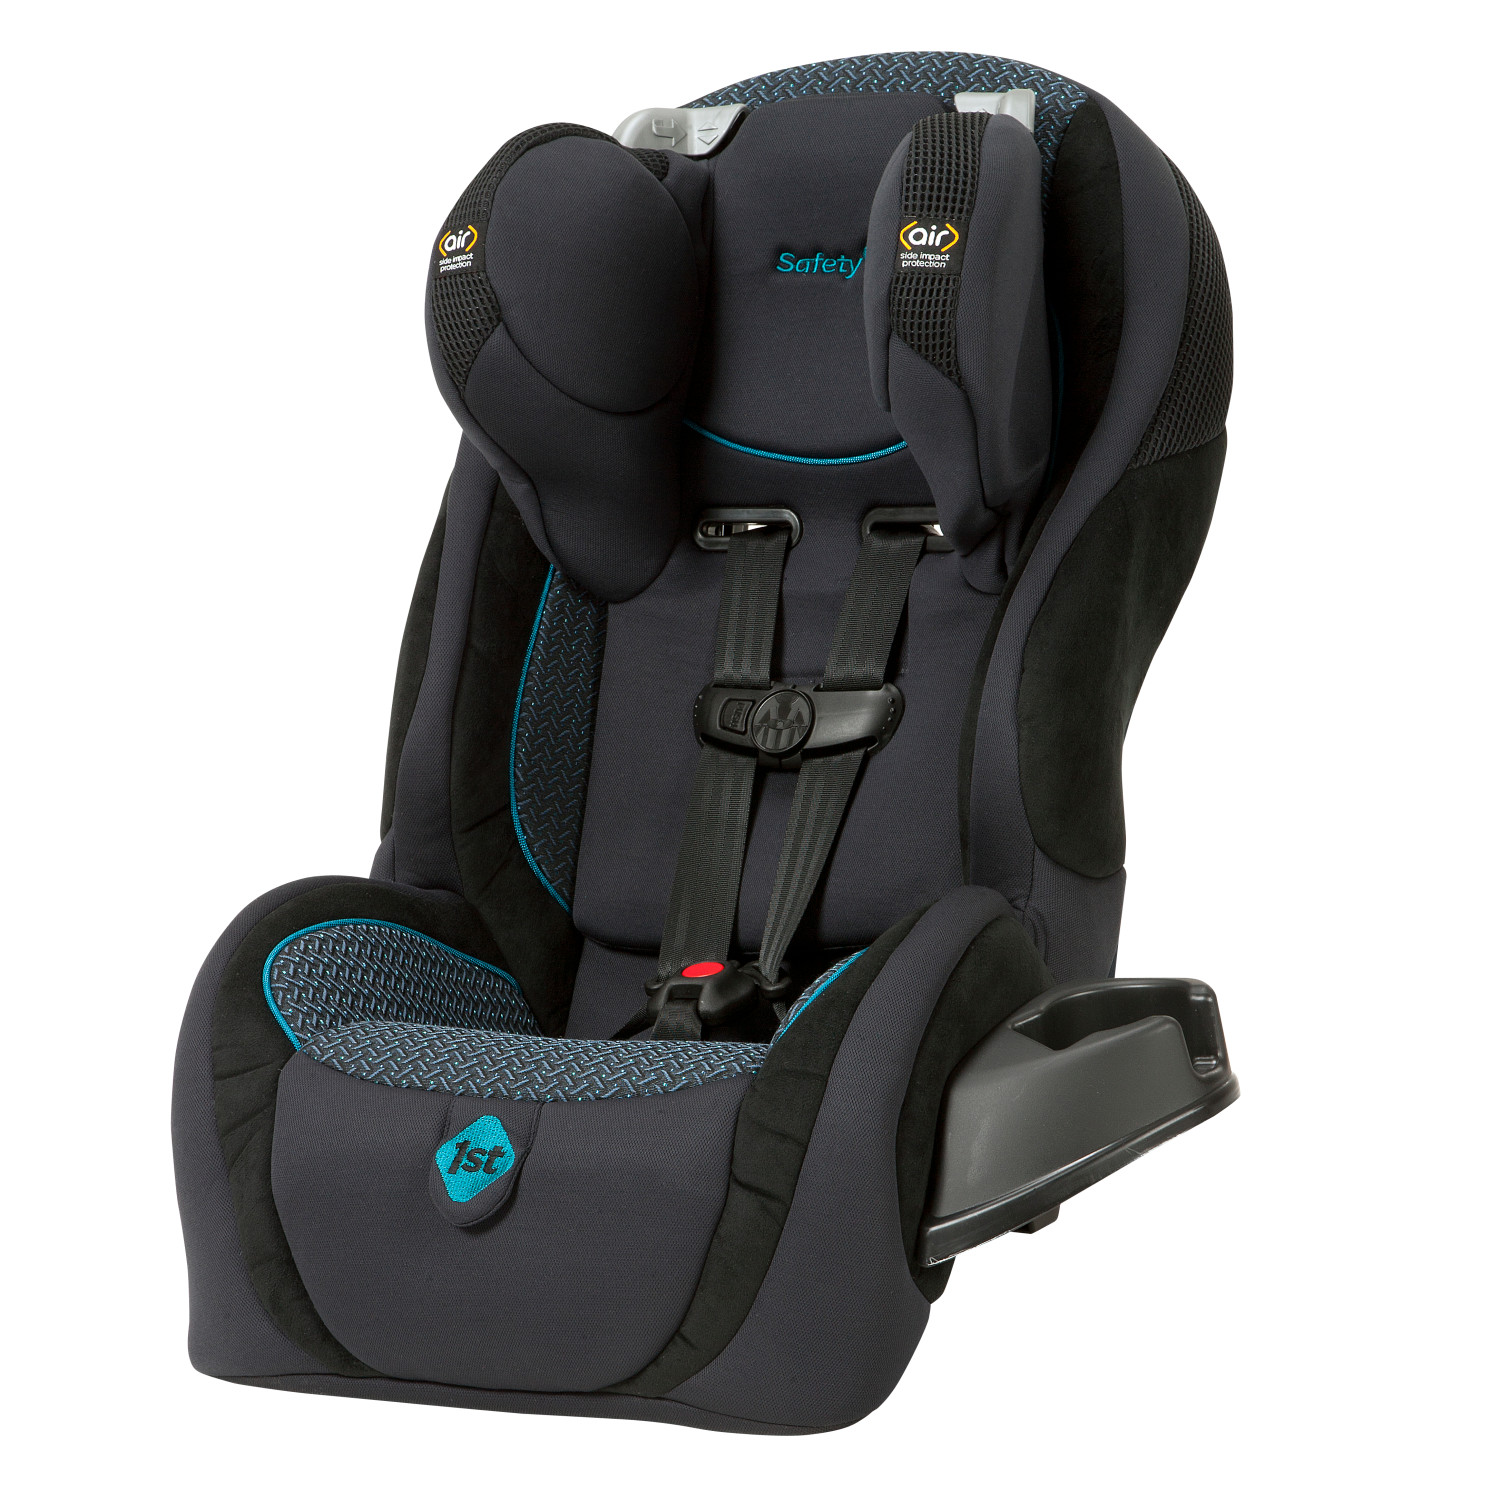 Safety-1st-Complete-Air-65-Convertible-Car-Seat thumbnail 51